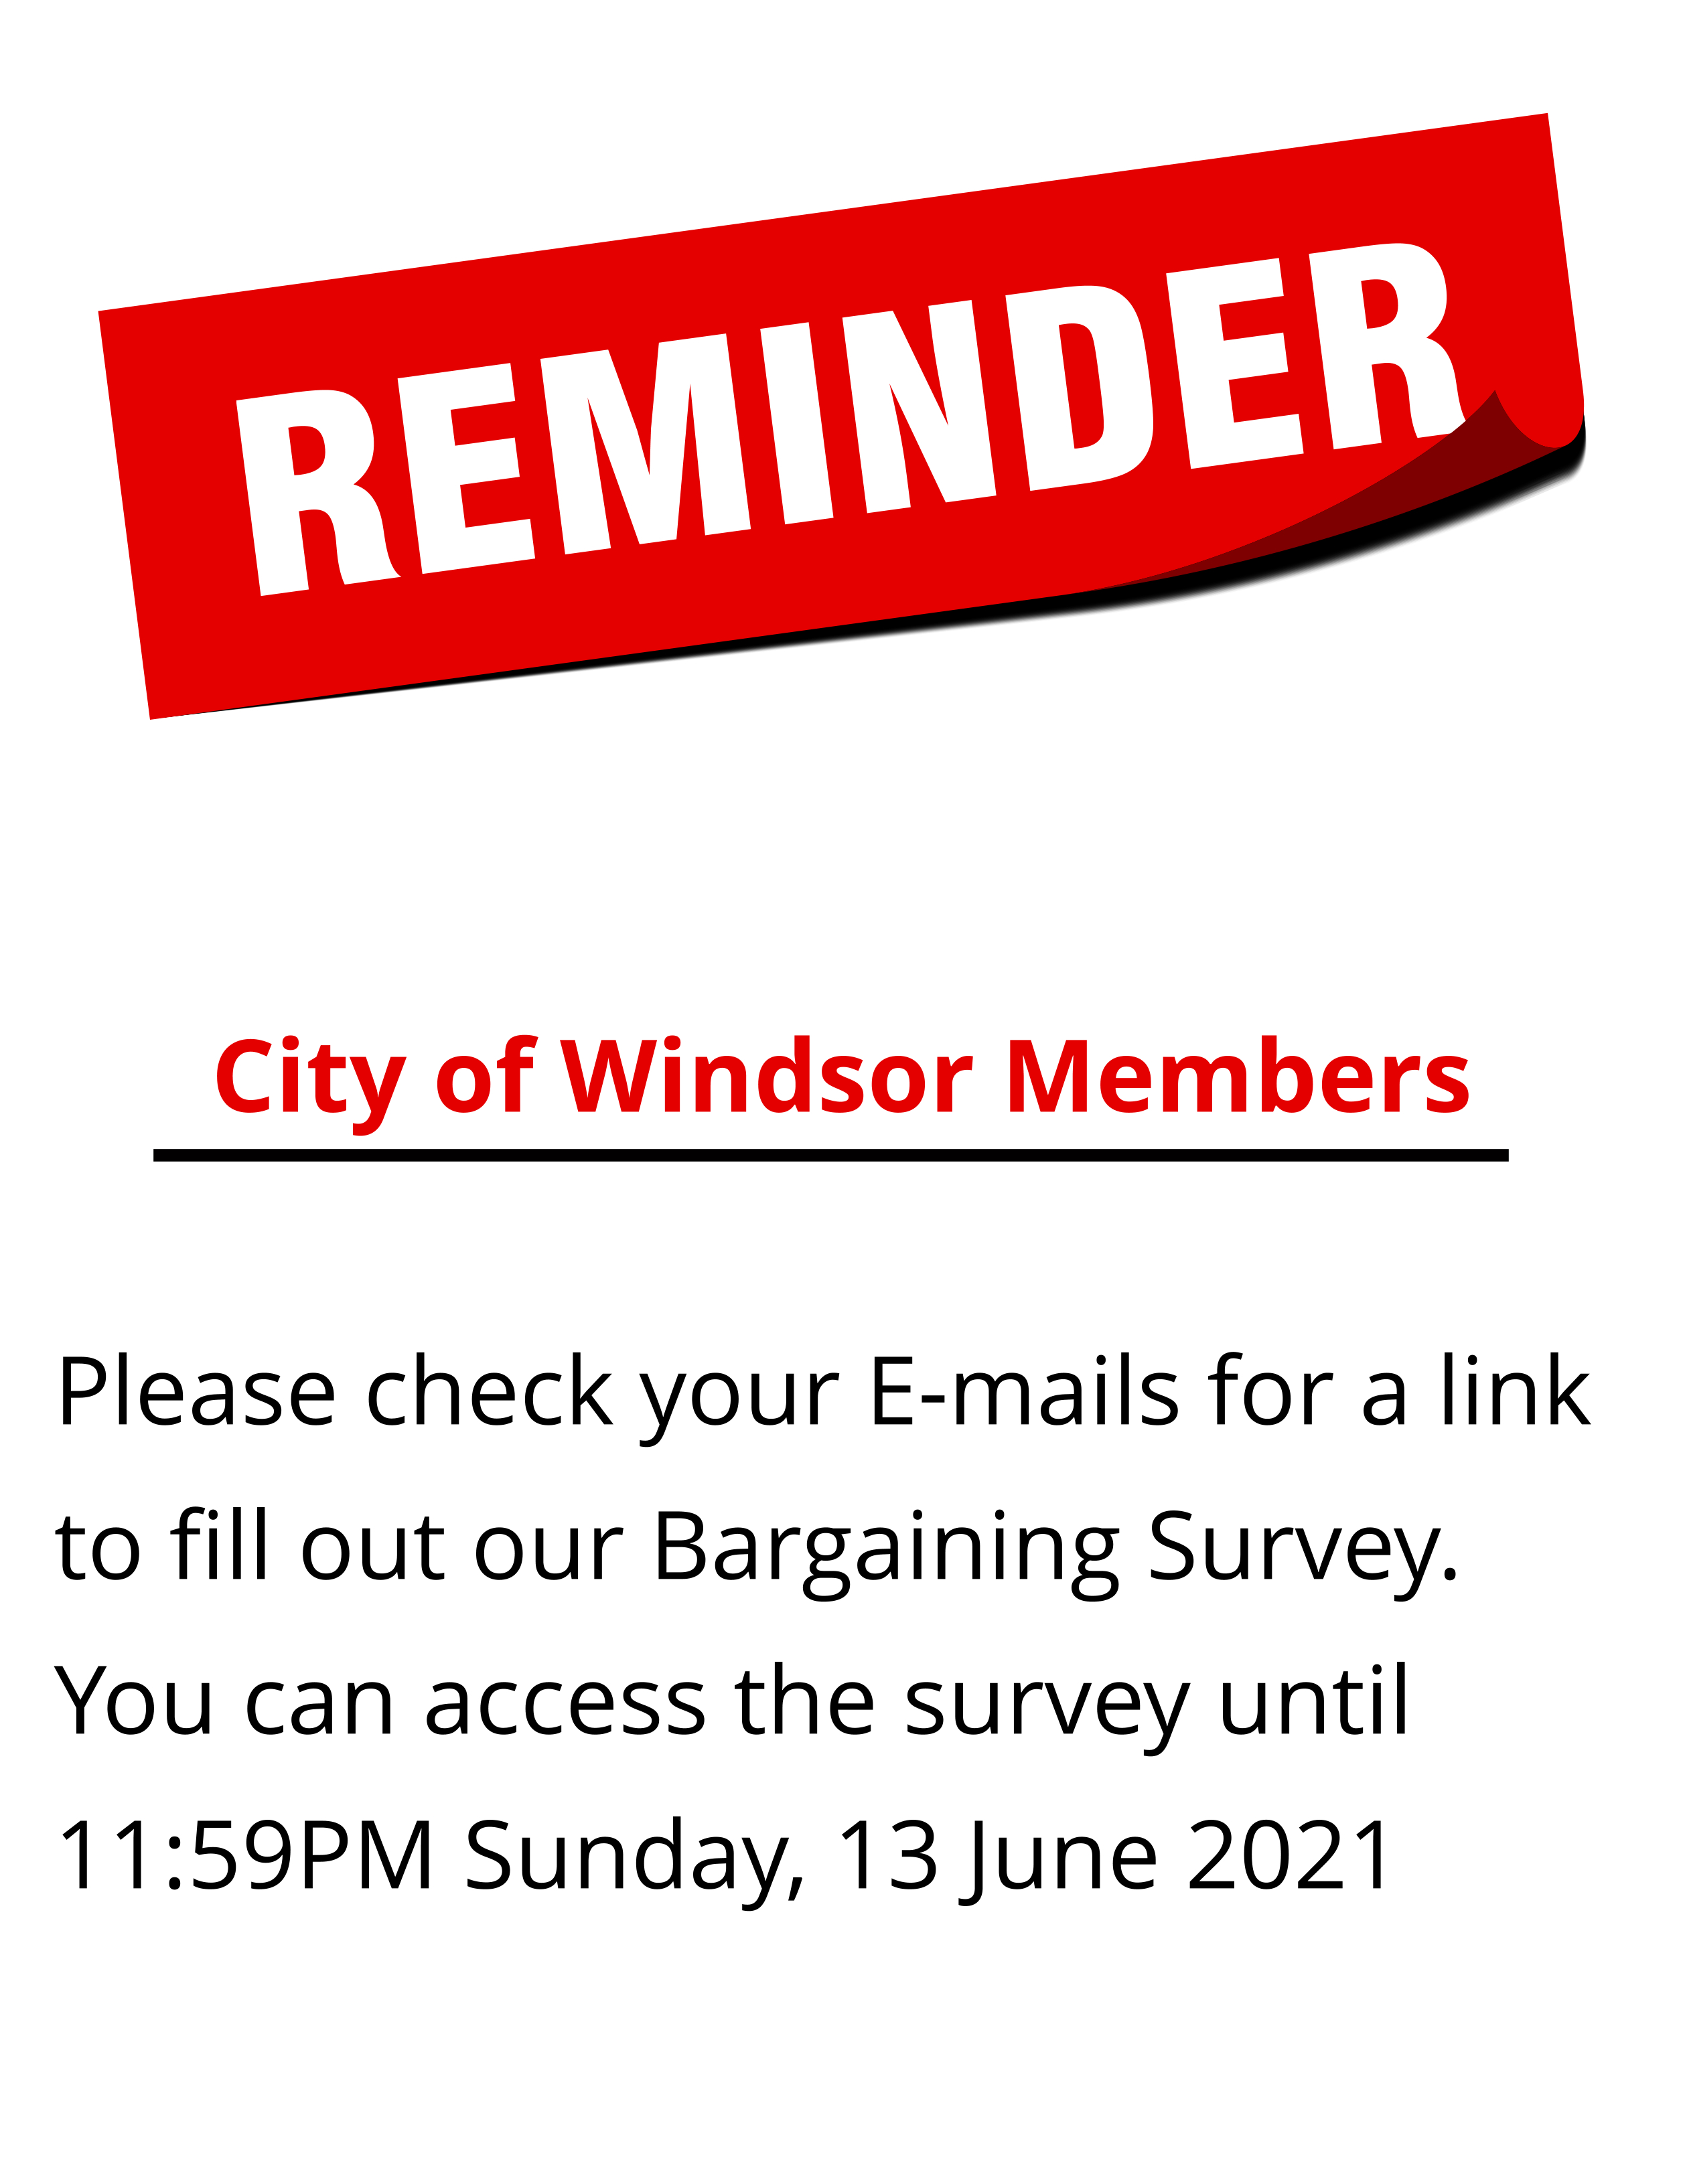 CUPE 543 Bargaining Survey: City of Windsor Members